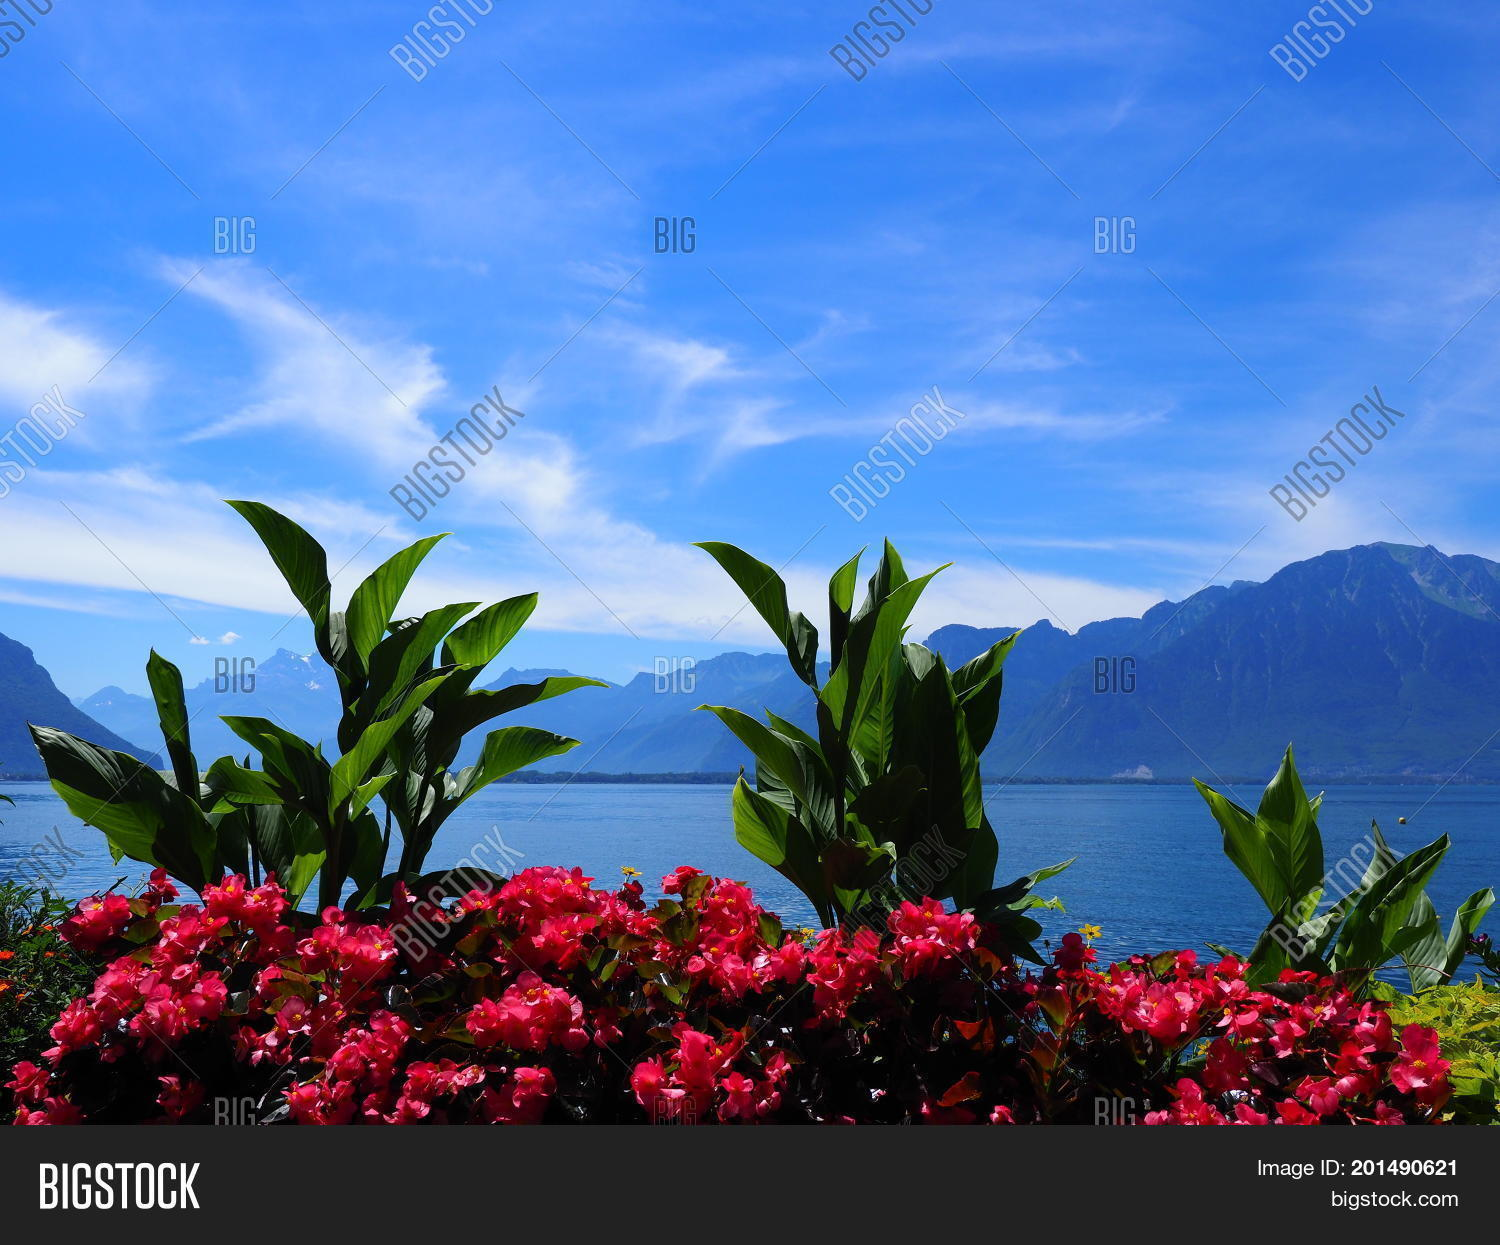 Beauty colorful image photo free trial bigstock beauty colorful flowers on promenade in montreux city at lake geneva in switzerland with panoramic view izmirmasajfo